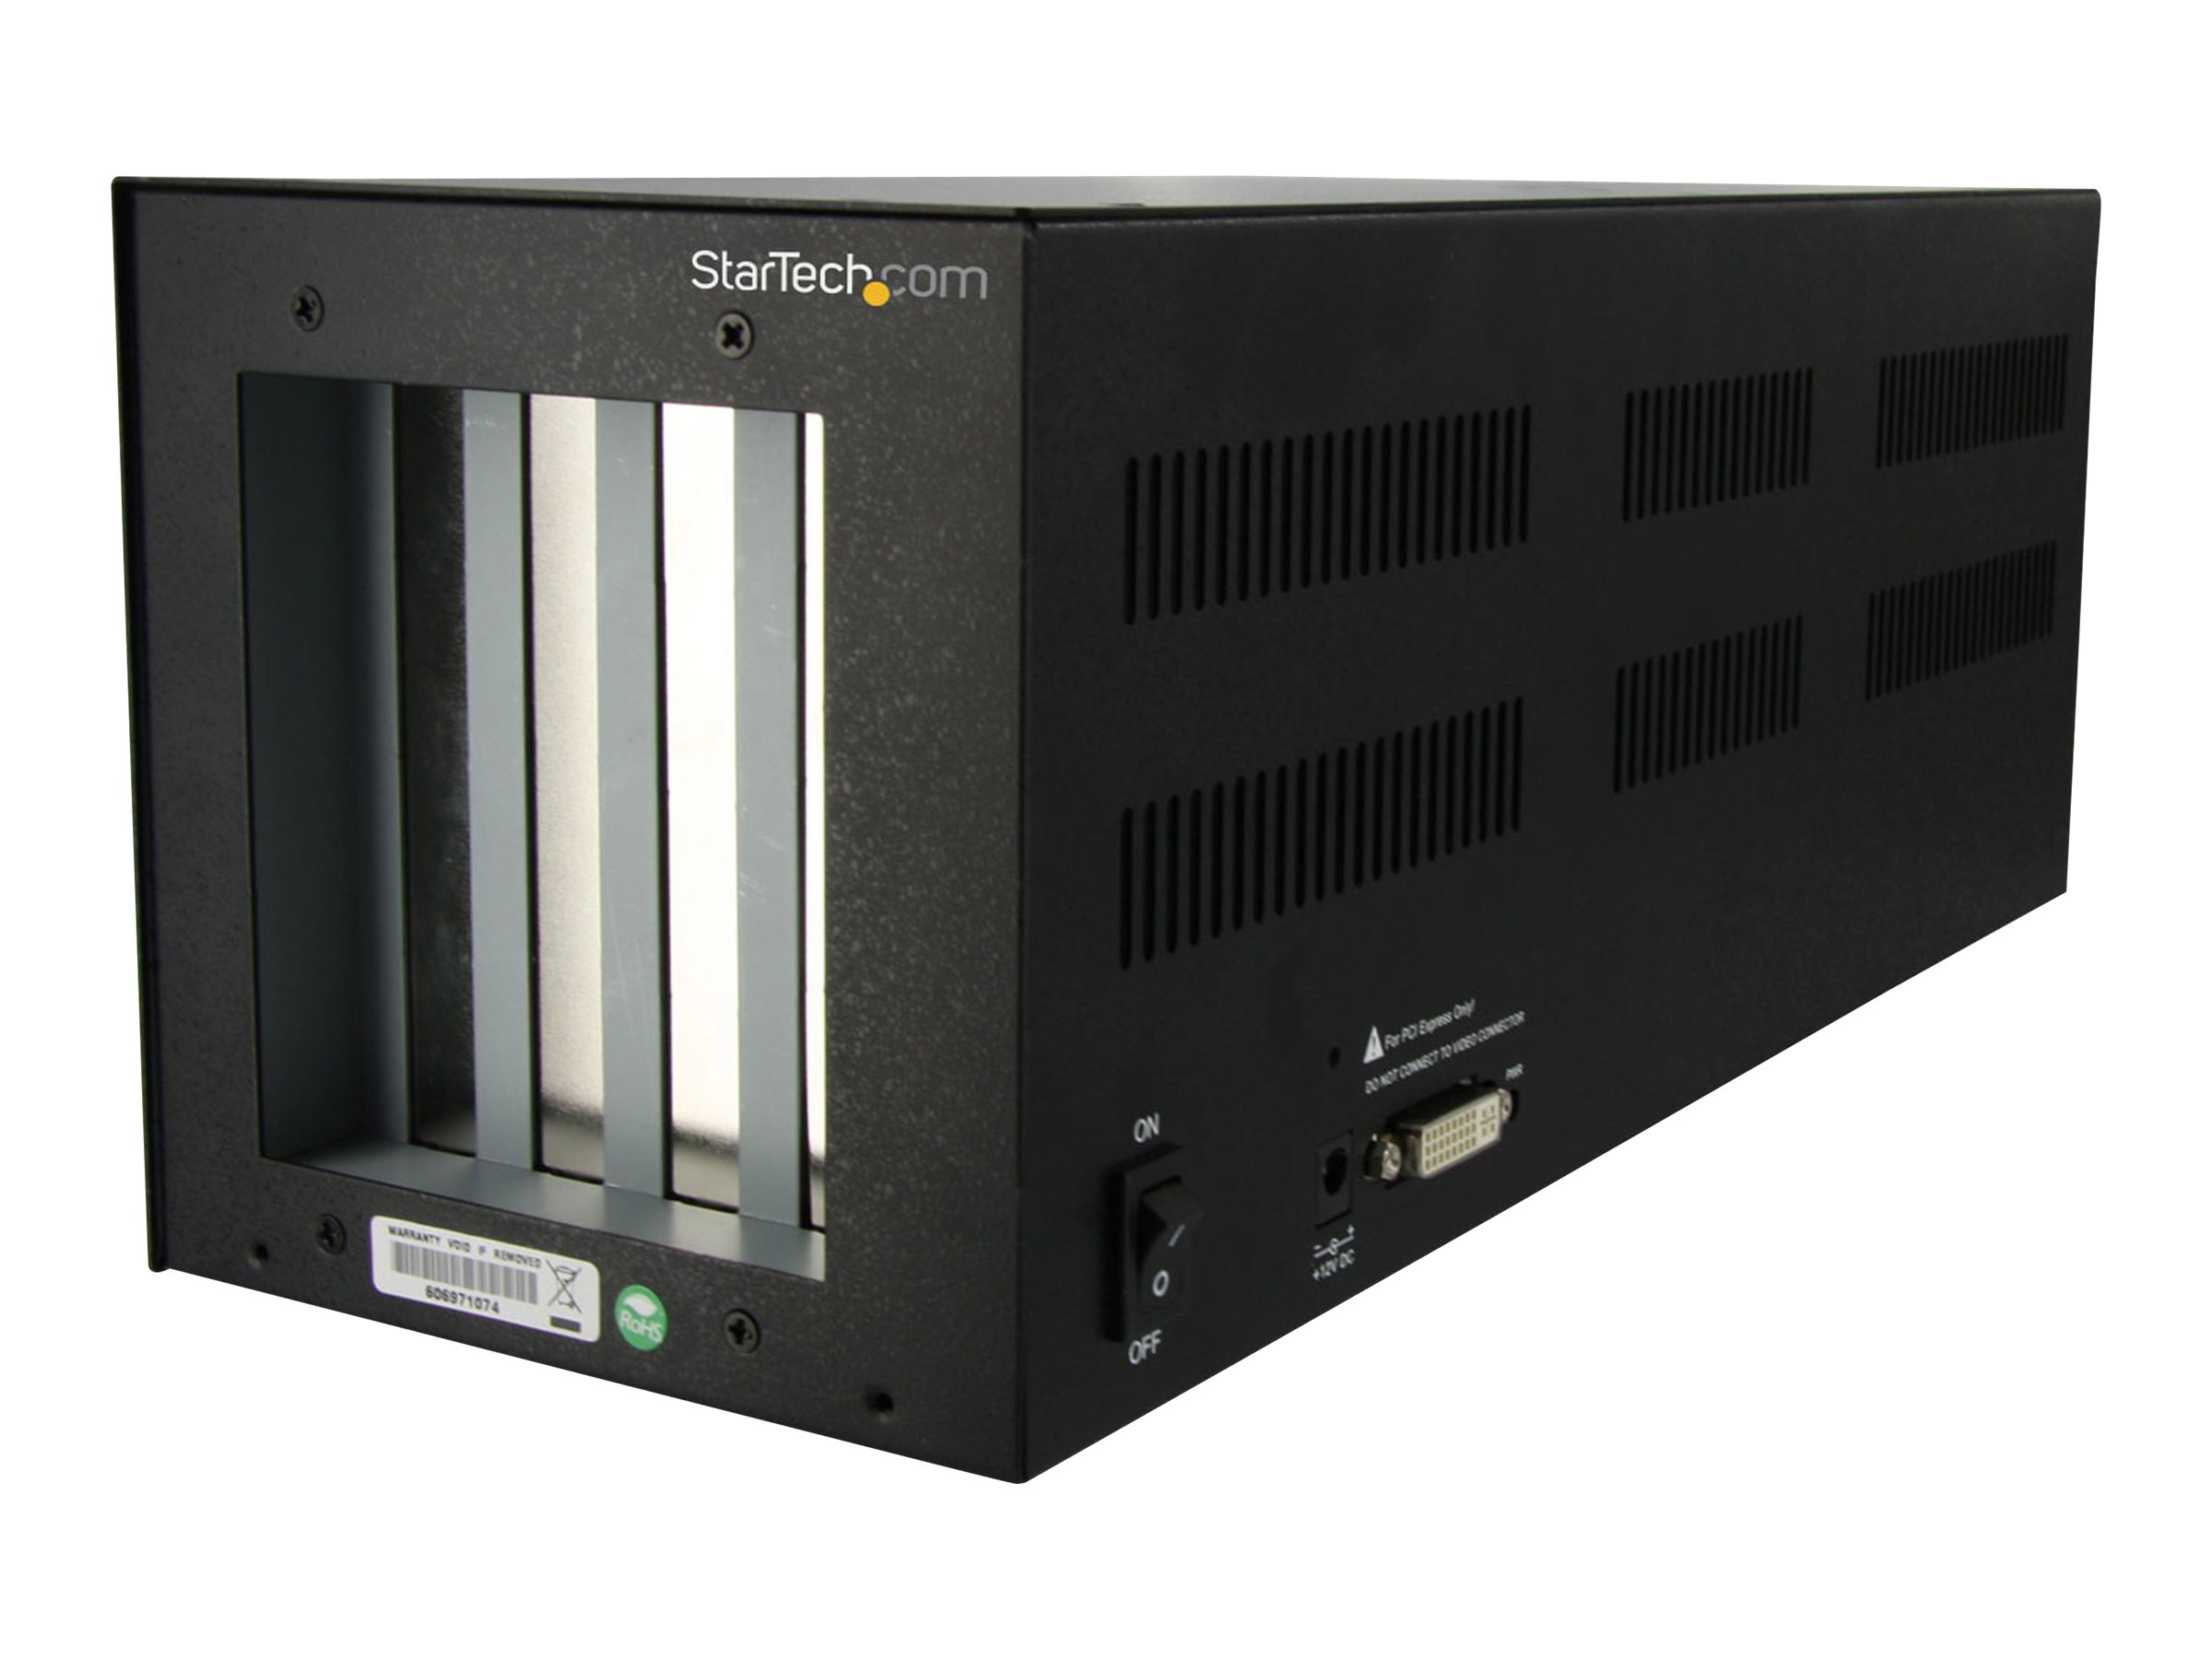 StarTech.com PCI Express to 2 PCI & 2 PCIe Expansion Enclosure System - Full Length (PEX2PCIE4L) - system bus extender